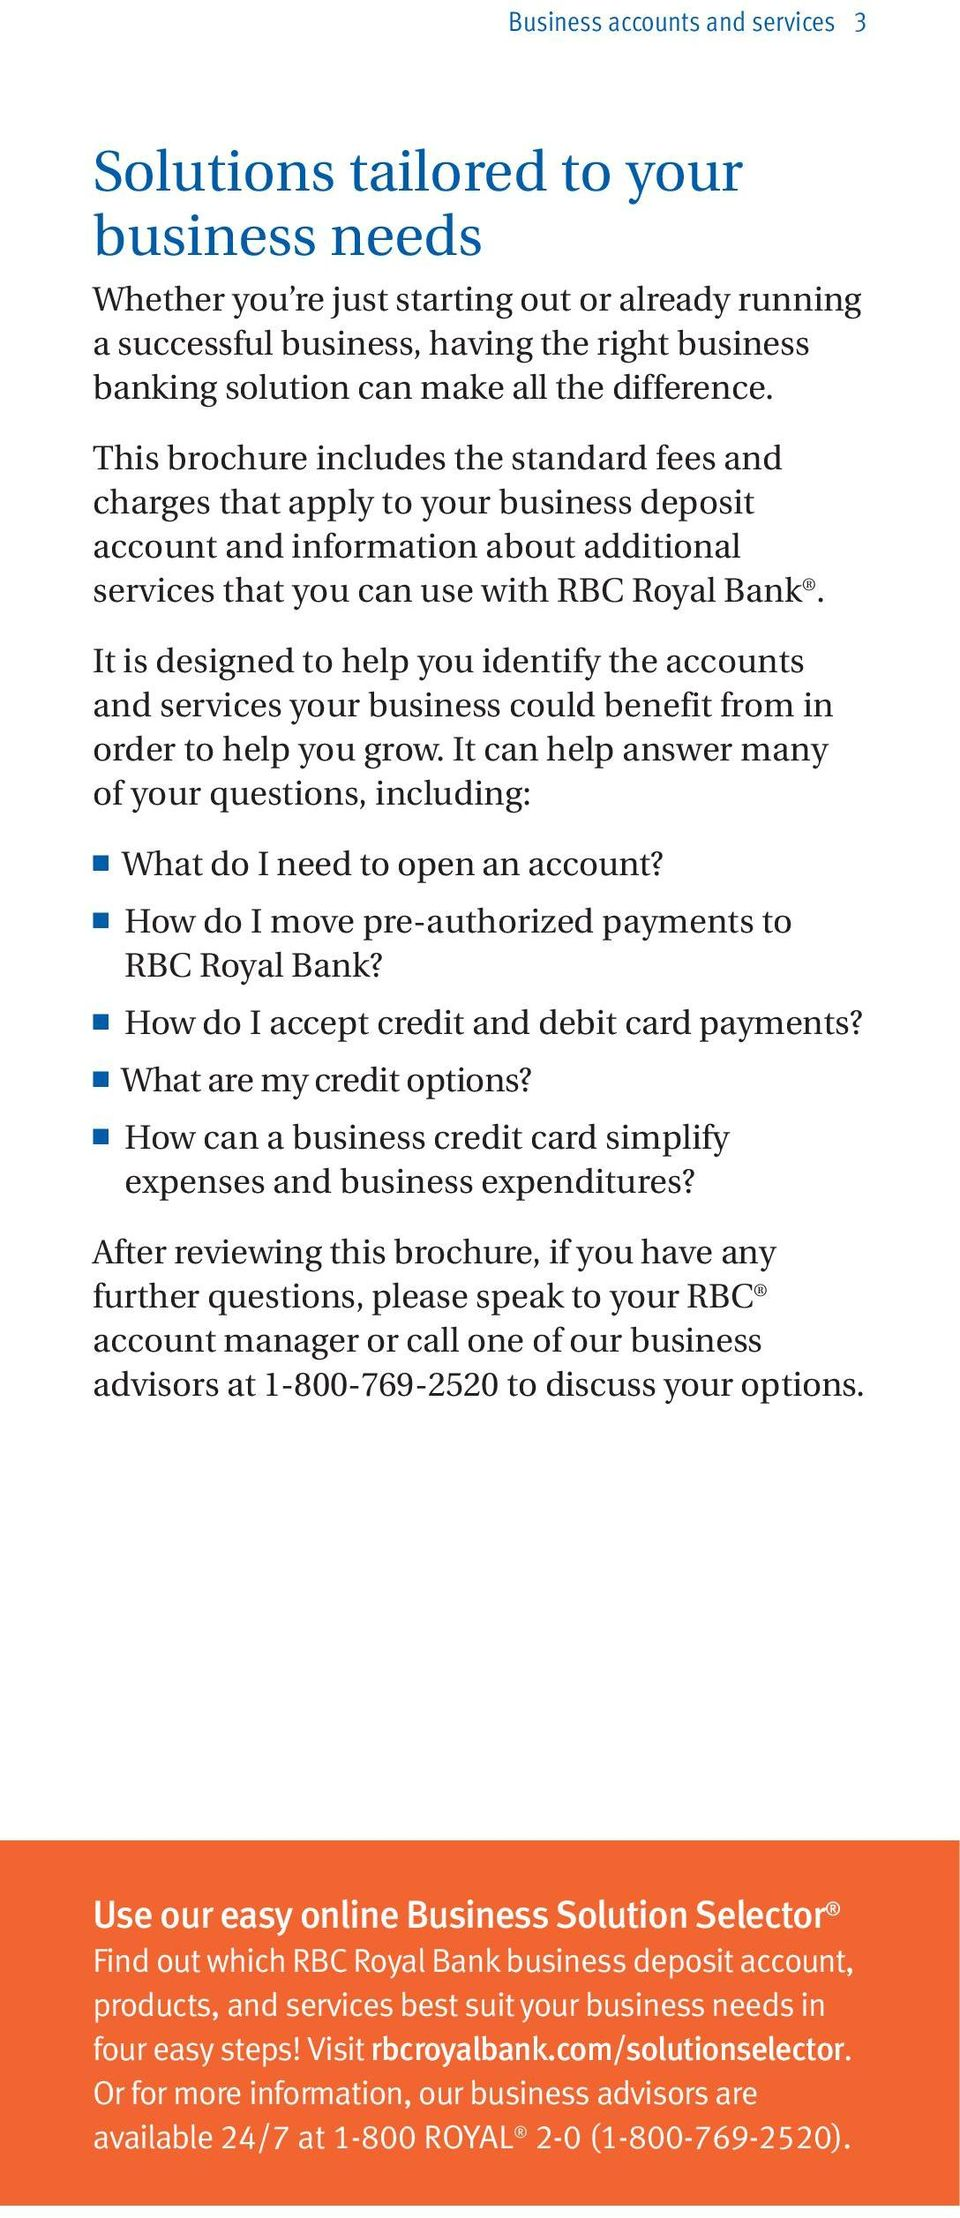 This brochure includes the standard fees and charges that apply to your business deposit account and information about additional services that you can use with RBC Royal Bank.